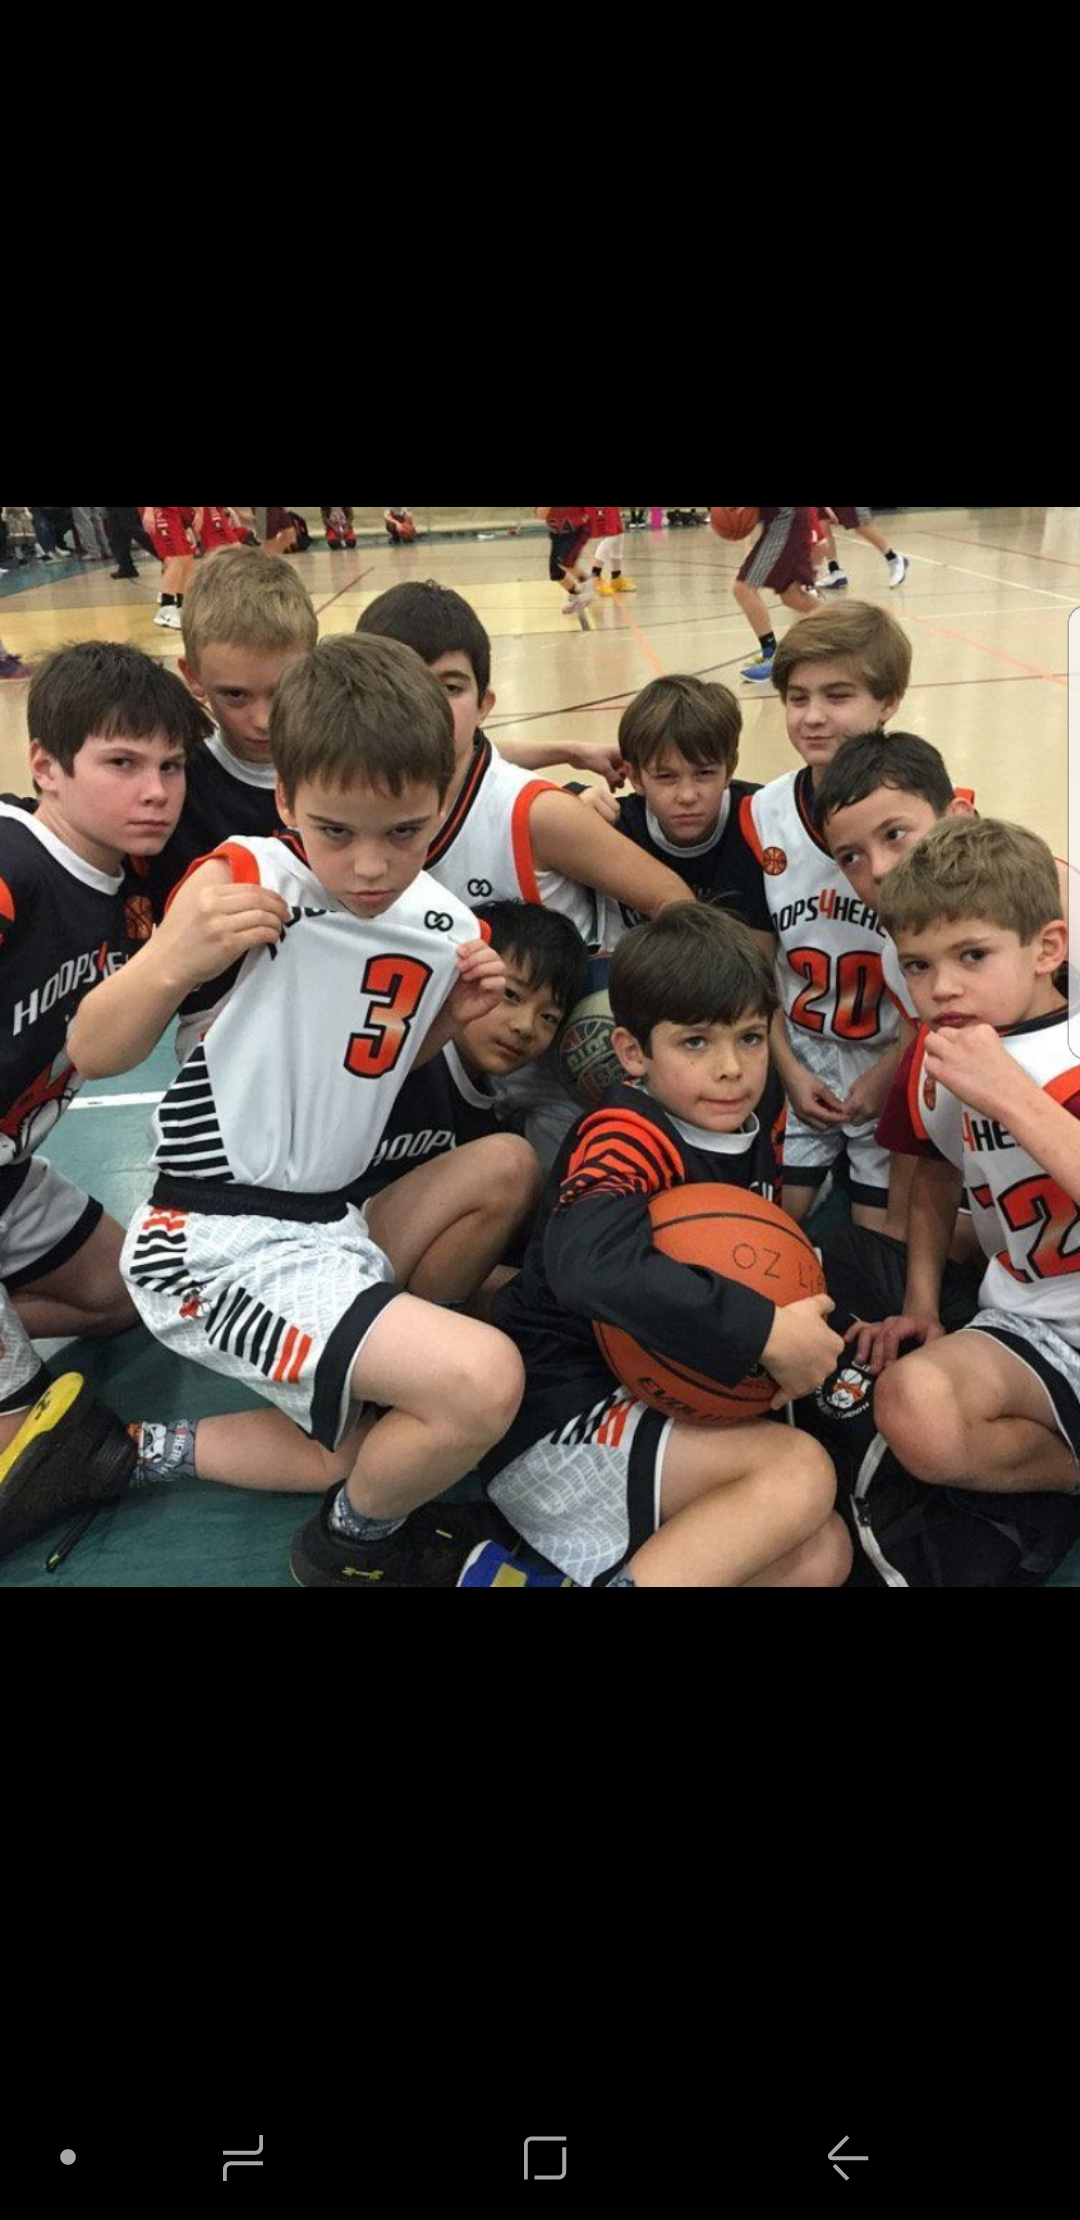 Youth HOOPS 4 HEAL Black White Red basketball uniforms, jerseys, and shorts